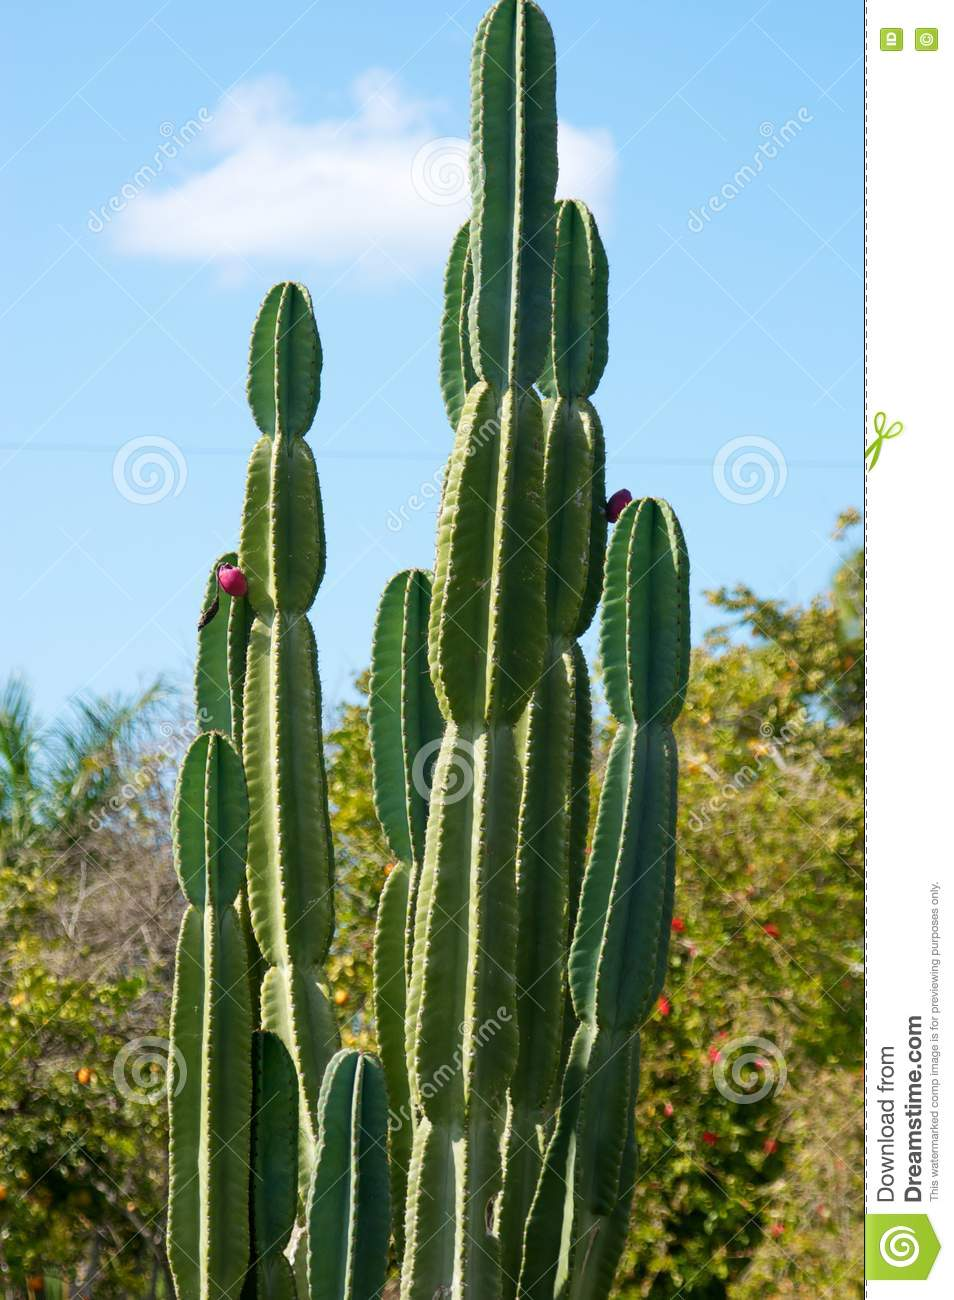 Large Cactus Plant With Trees In The Background Stock